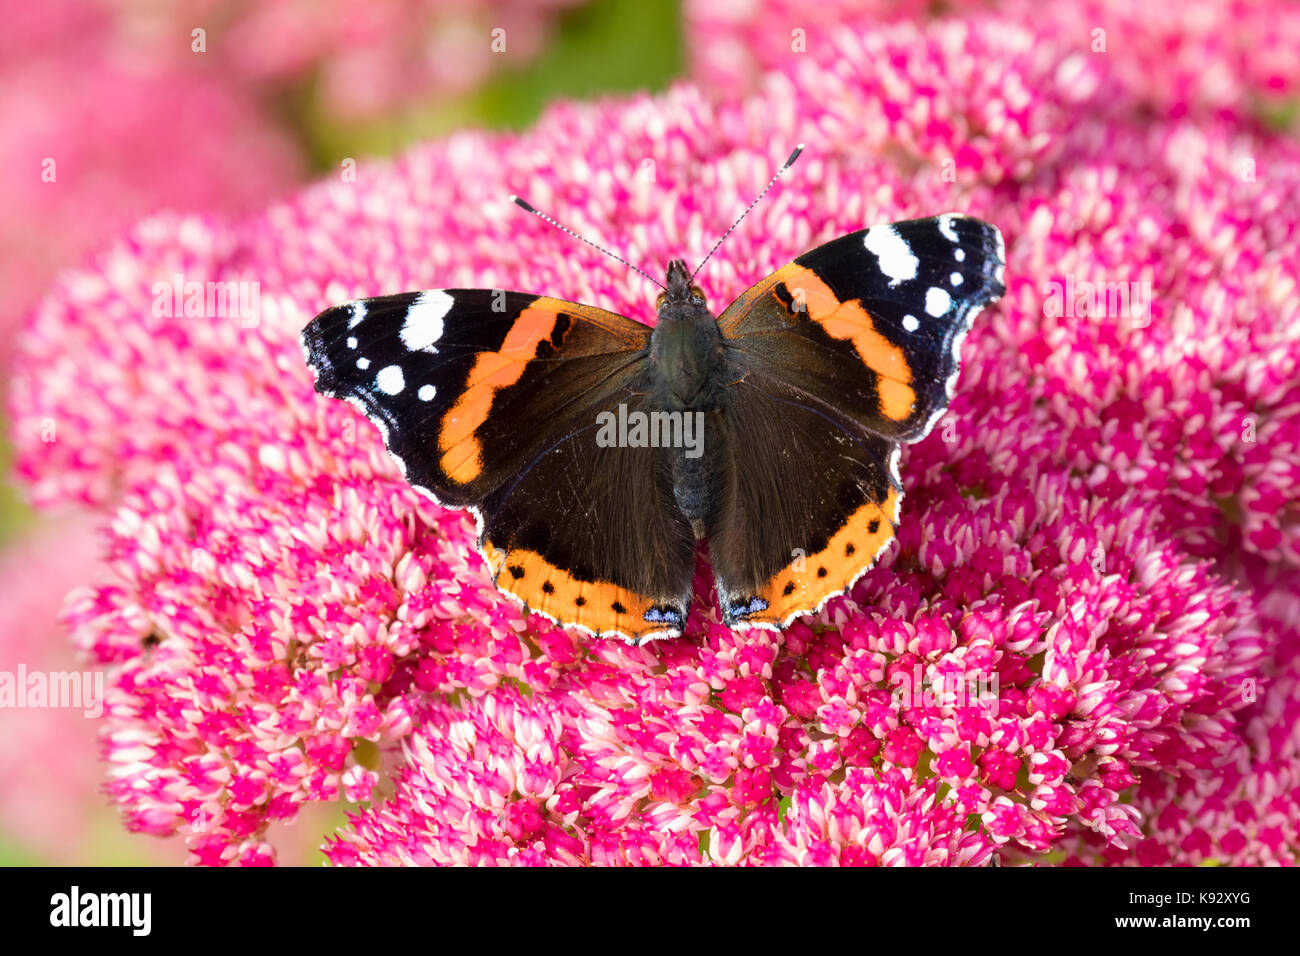 Adult Red admiral butterfly, Vanessa atalanta, feeding on the September flowers of Sedum spectabile - Stock Image